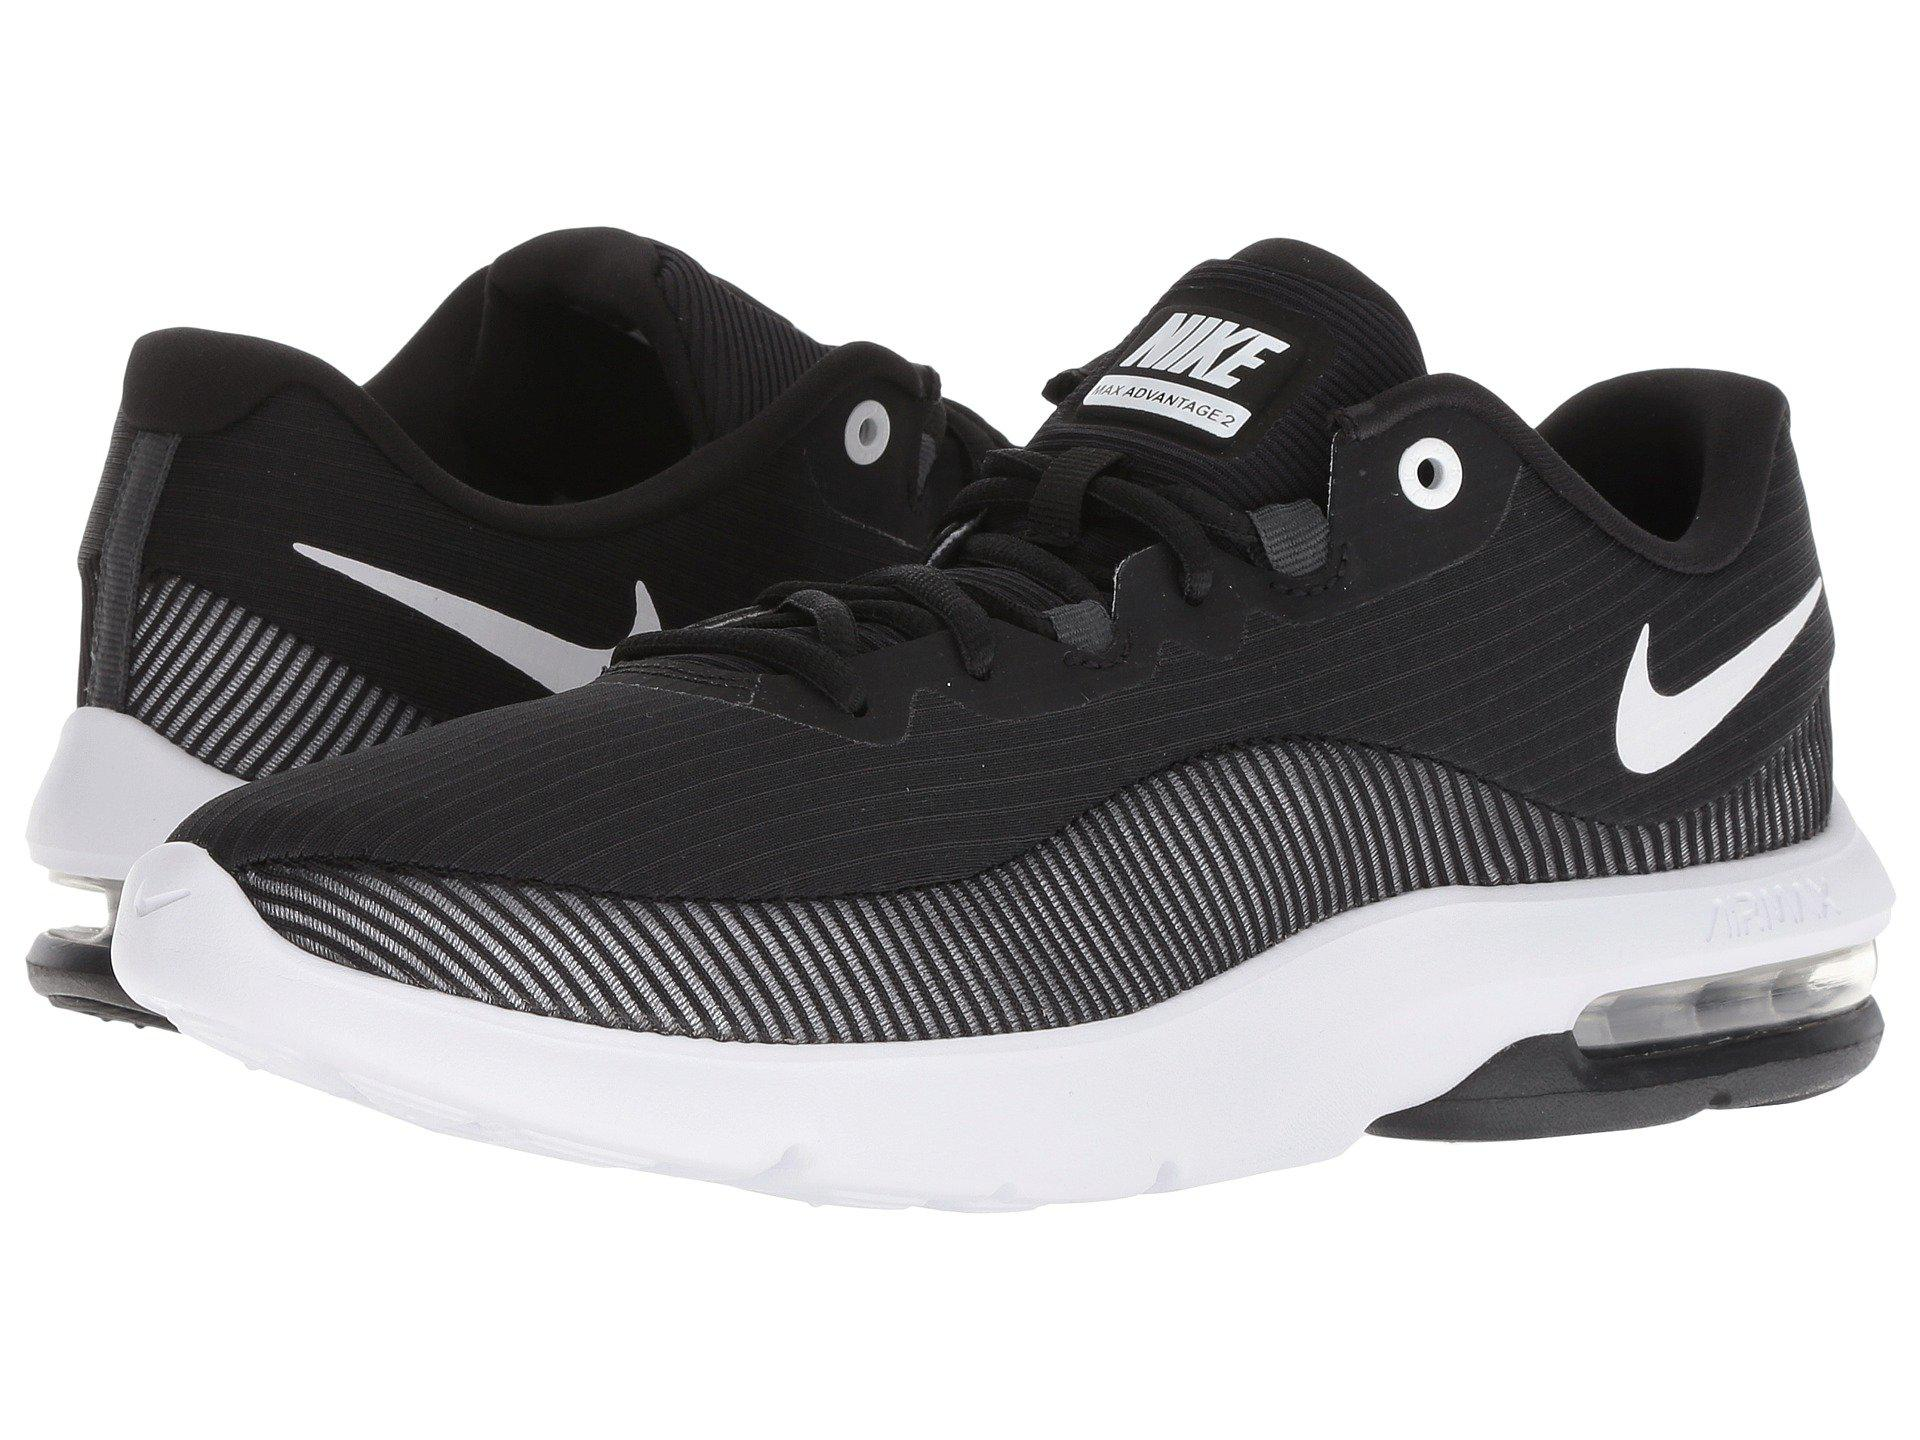 e5f46951f1 Nike Air Max Advantage 2 (black/white/anthracite) Men's Running ...